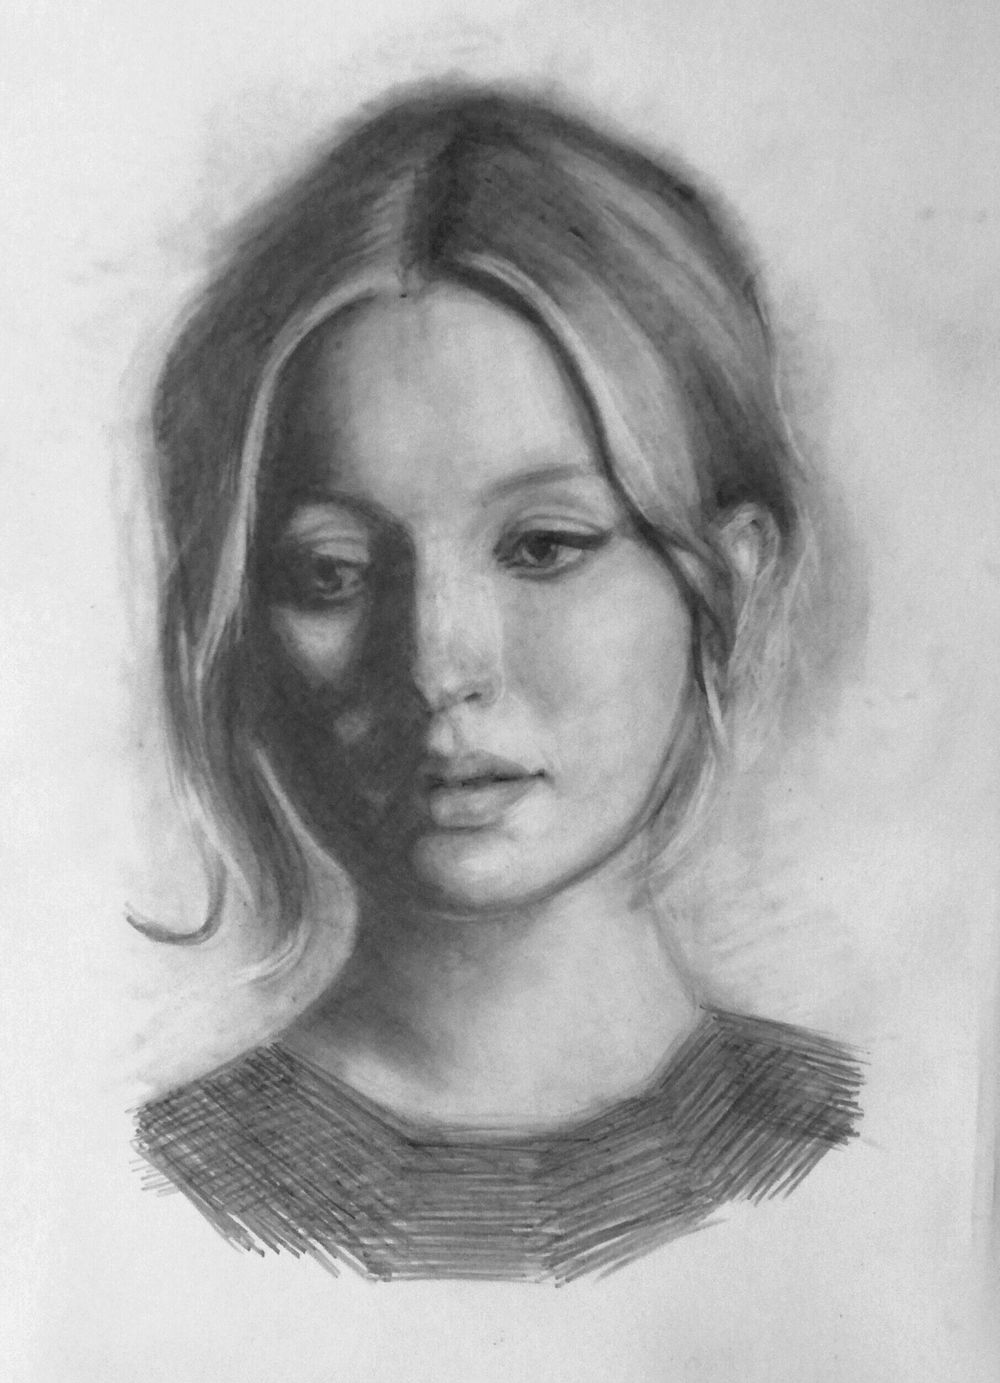 Pencil Drawing - NEW - image 3 - student project